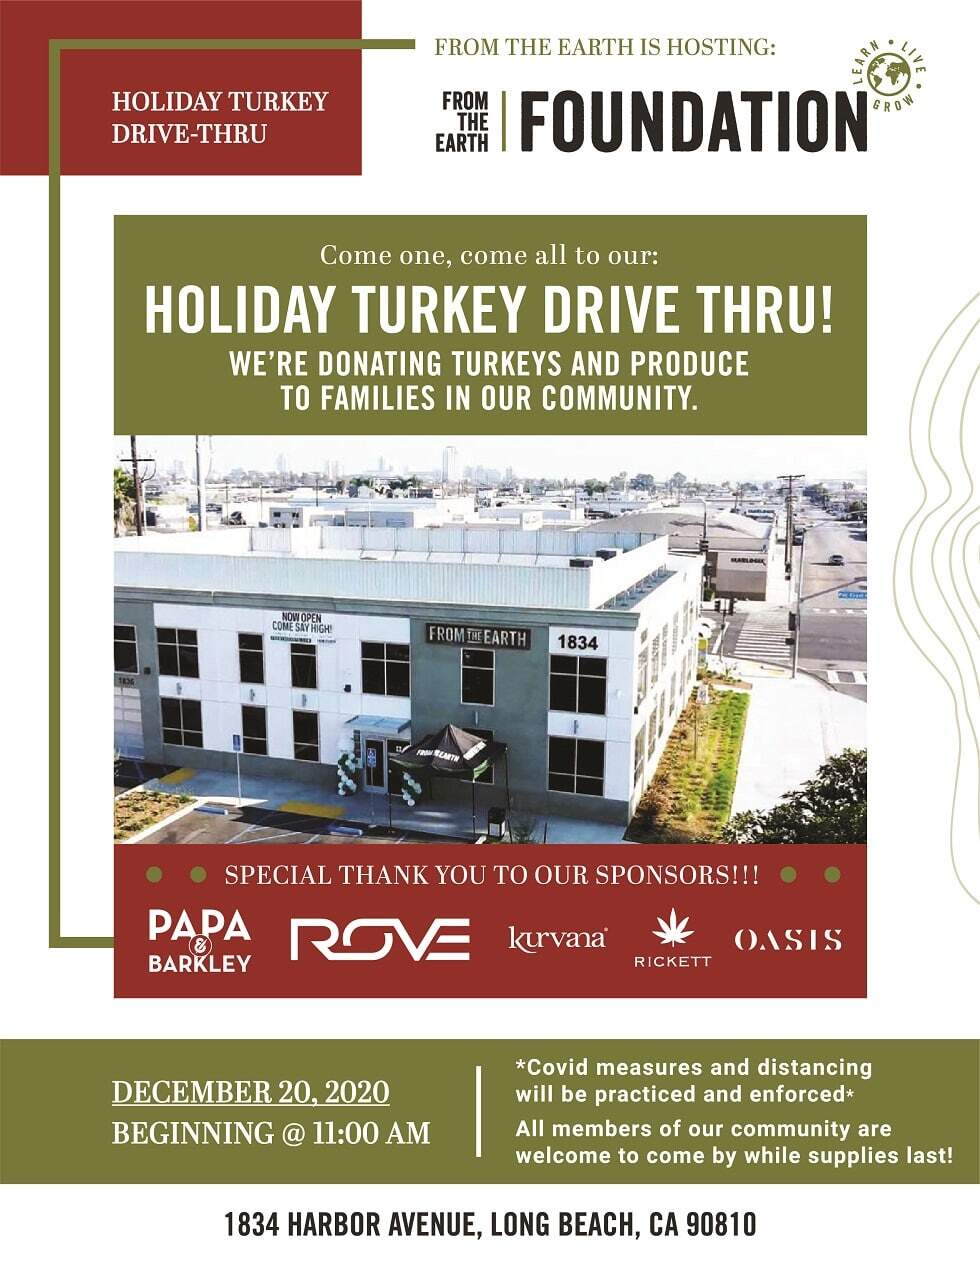 FTEF_HOLIDAY_TURKEY_DRIVE